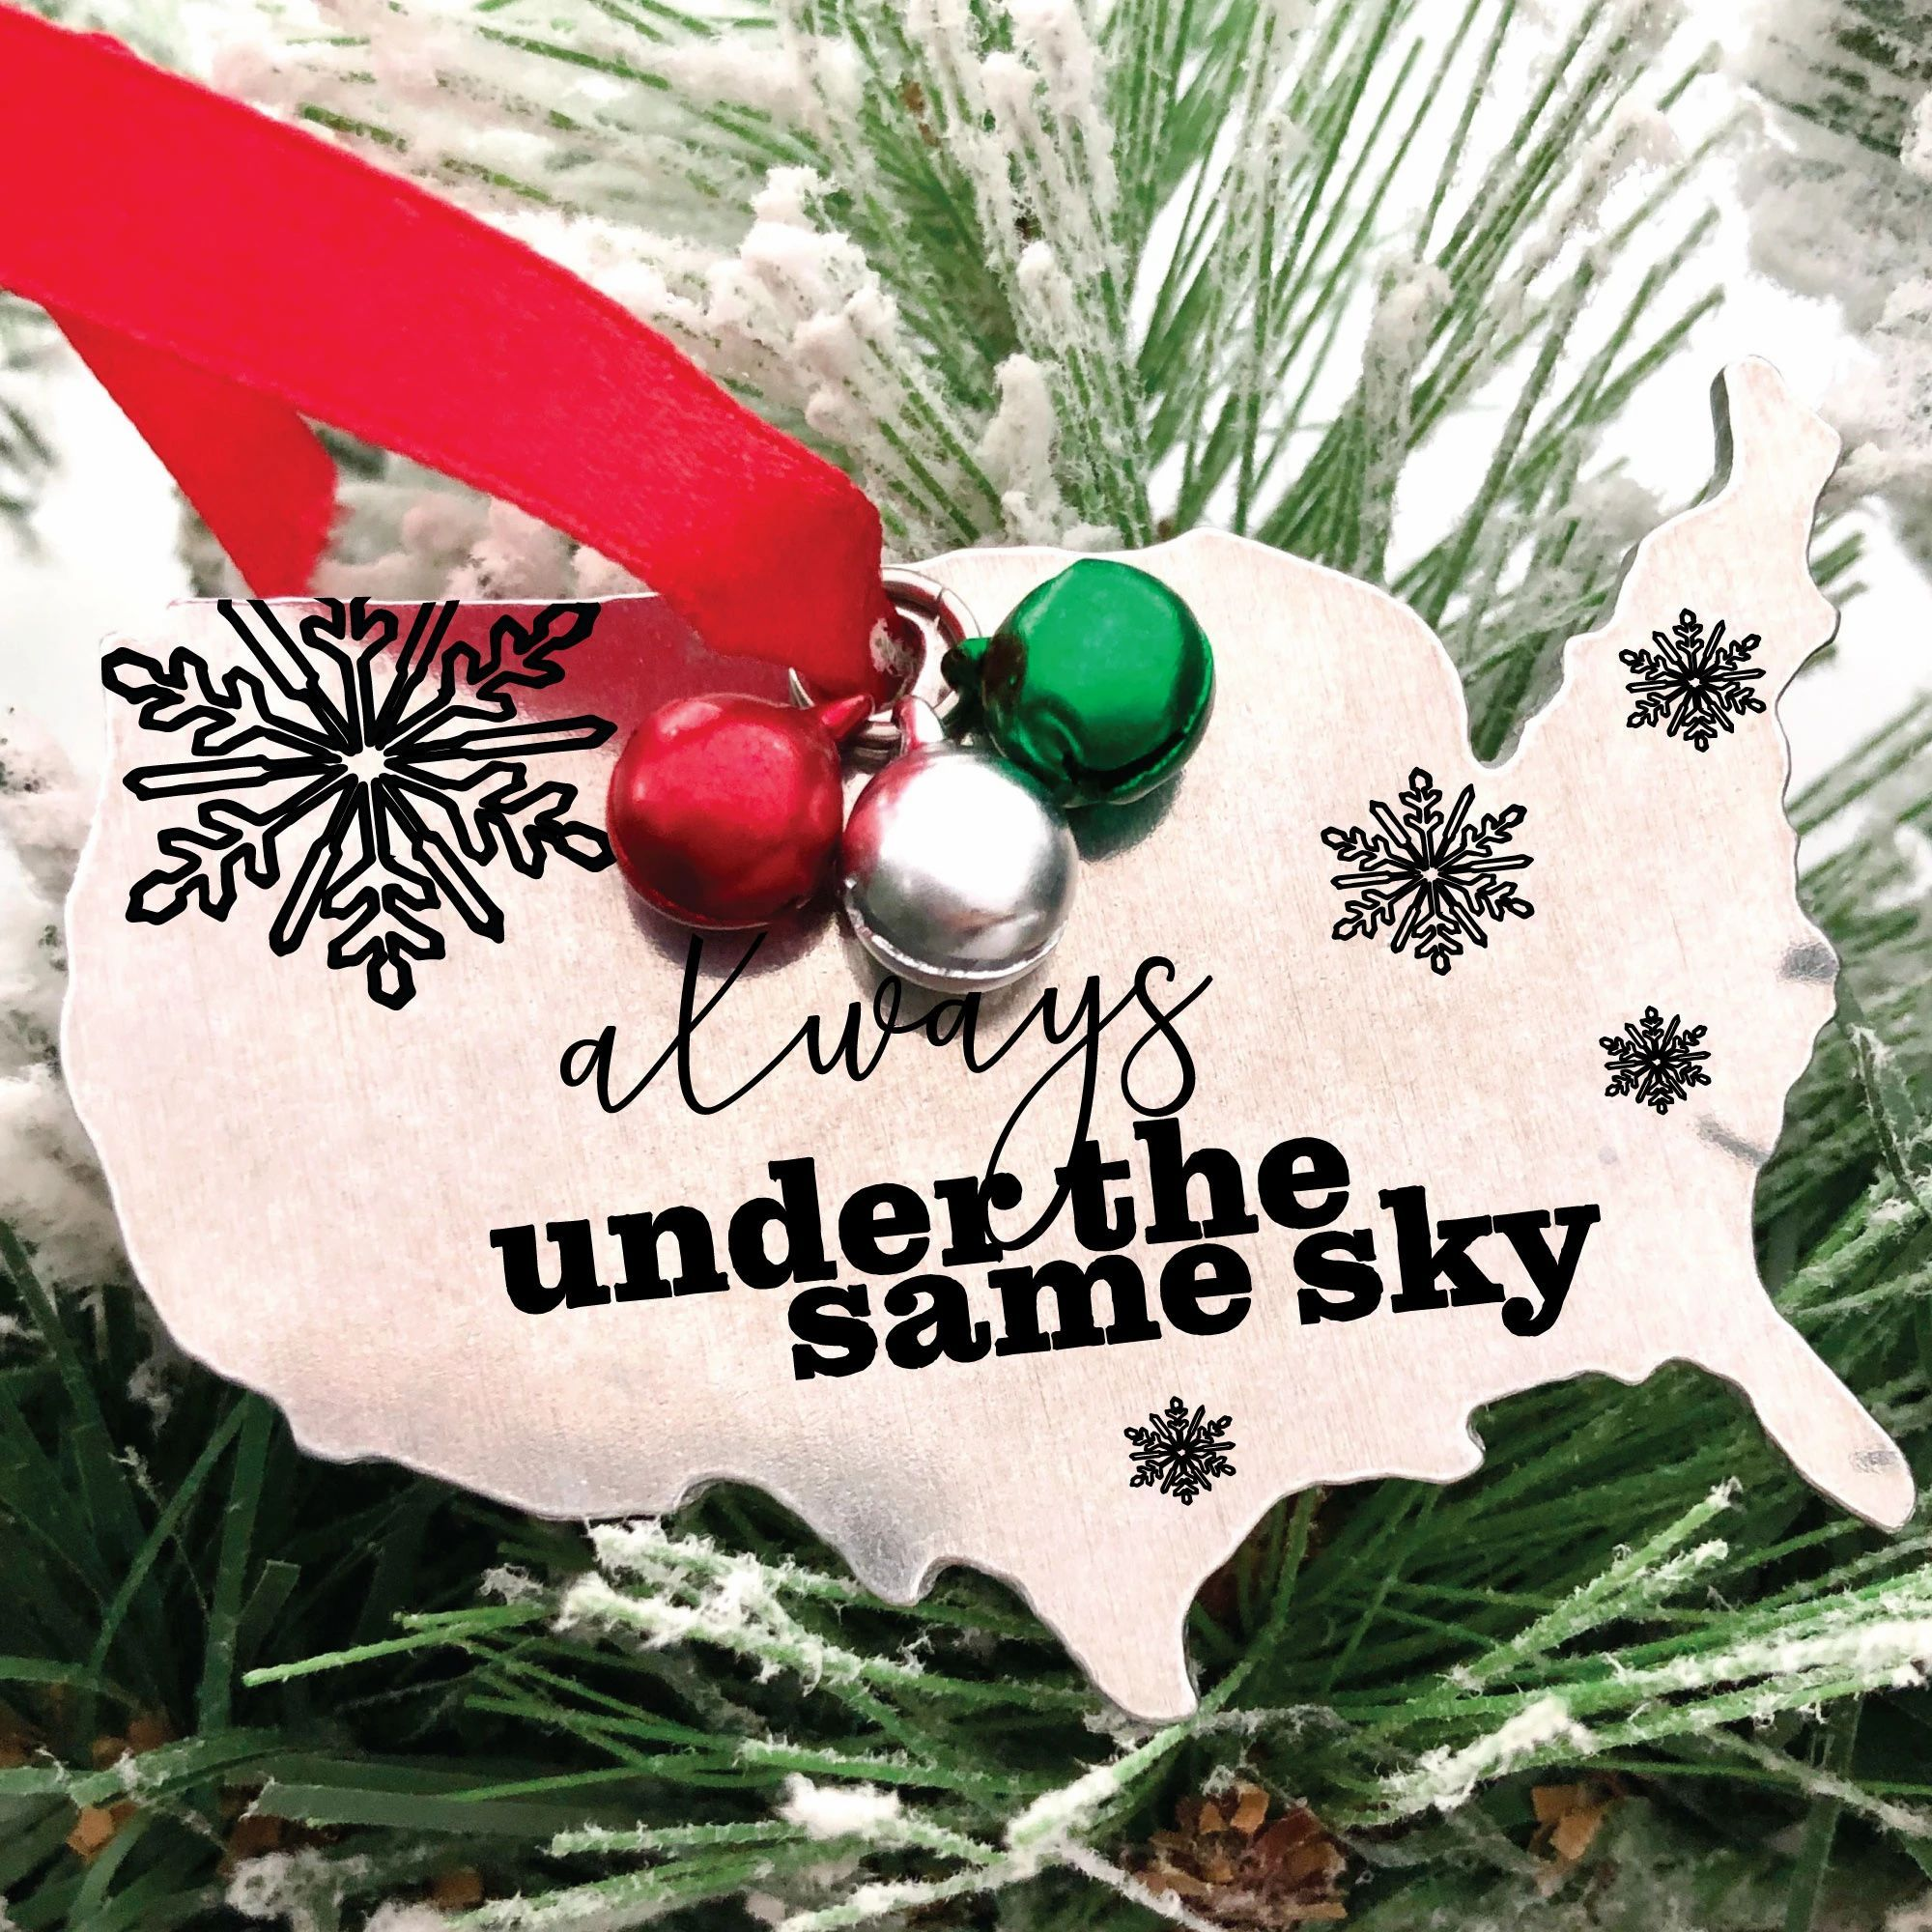 Personalized Christmas Ornaments in 2020 Personalized